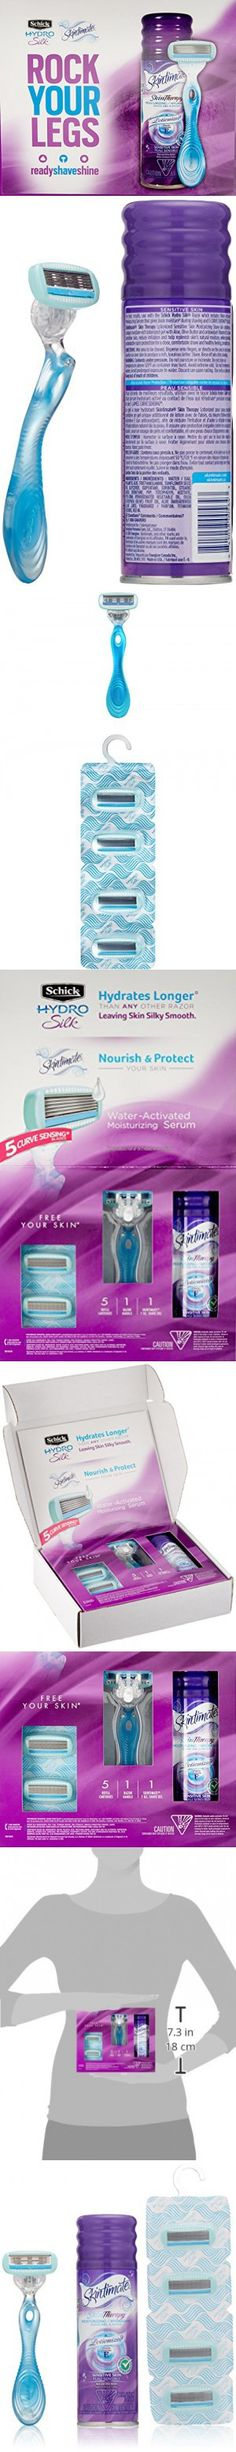 Schick Hydro Silk Shaving Starter Gift Set for Women with Shower Ready Razor Refill Blades and Skintimate Skin Therapy Shave Gel for Sensitive Skin